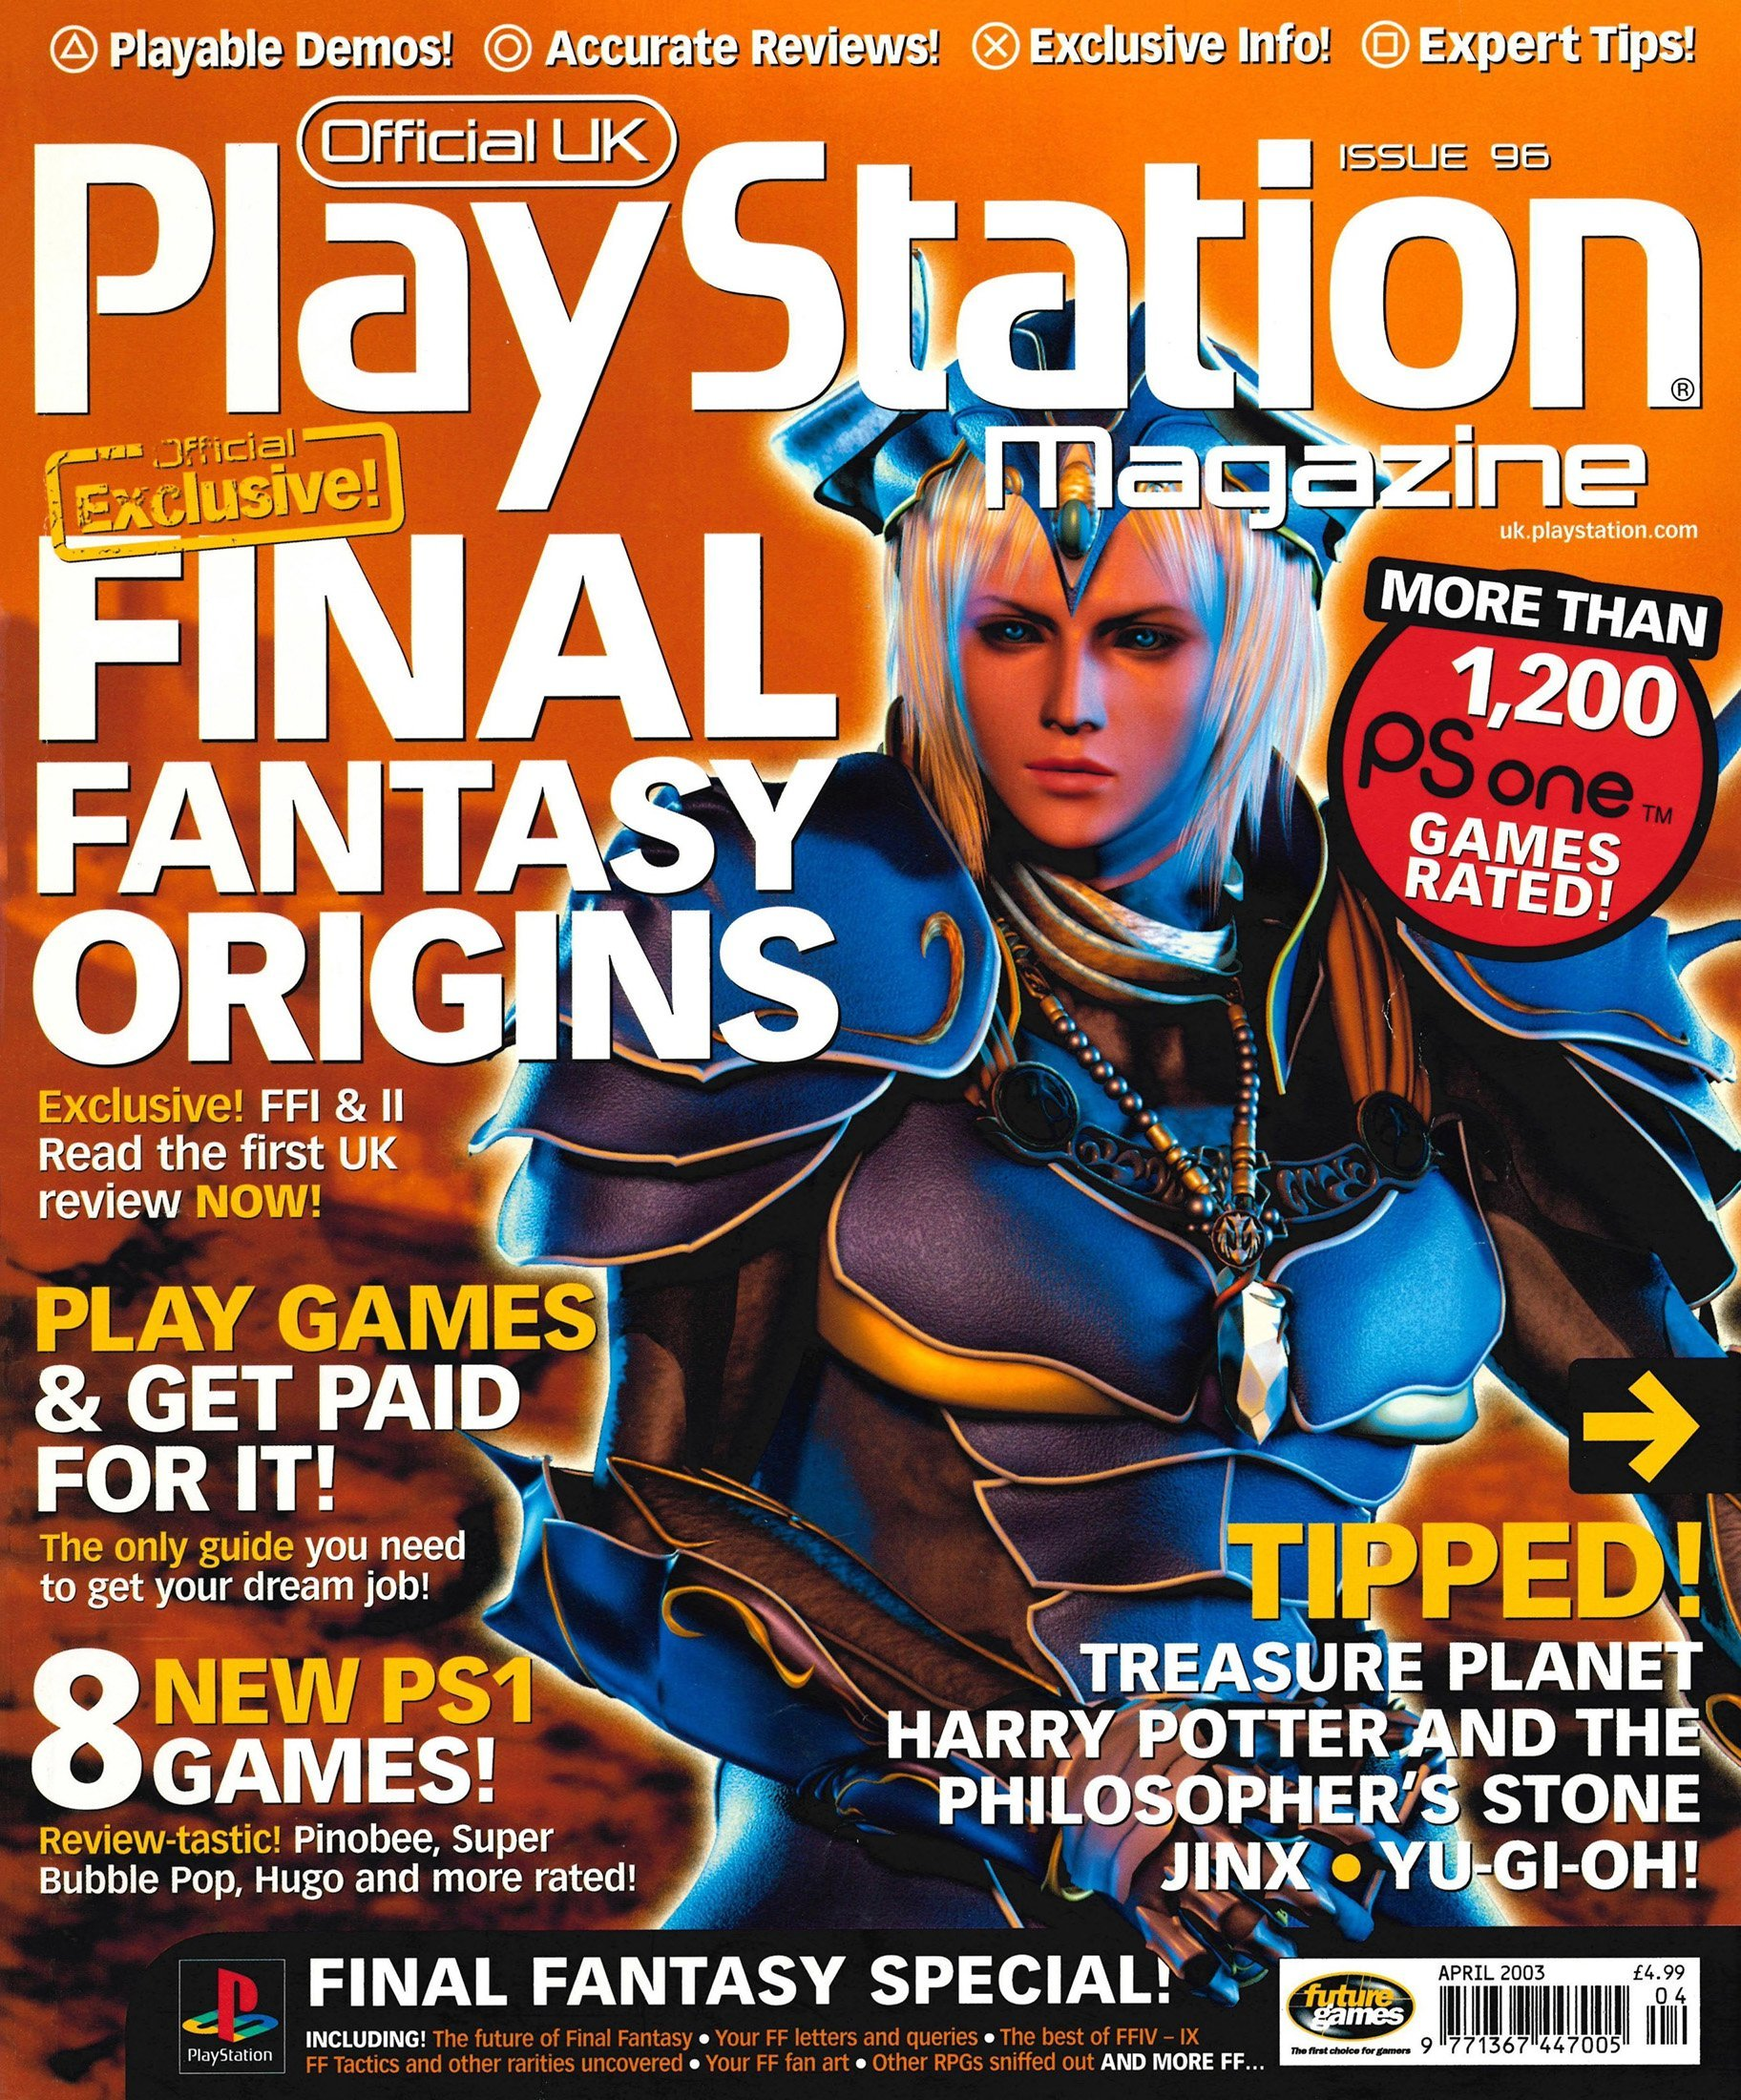 Official UK PlayStation Magazine Issue 096 (April 2003)